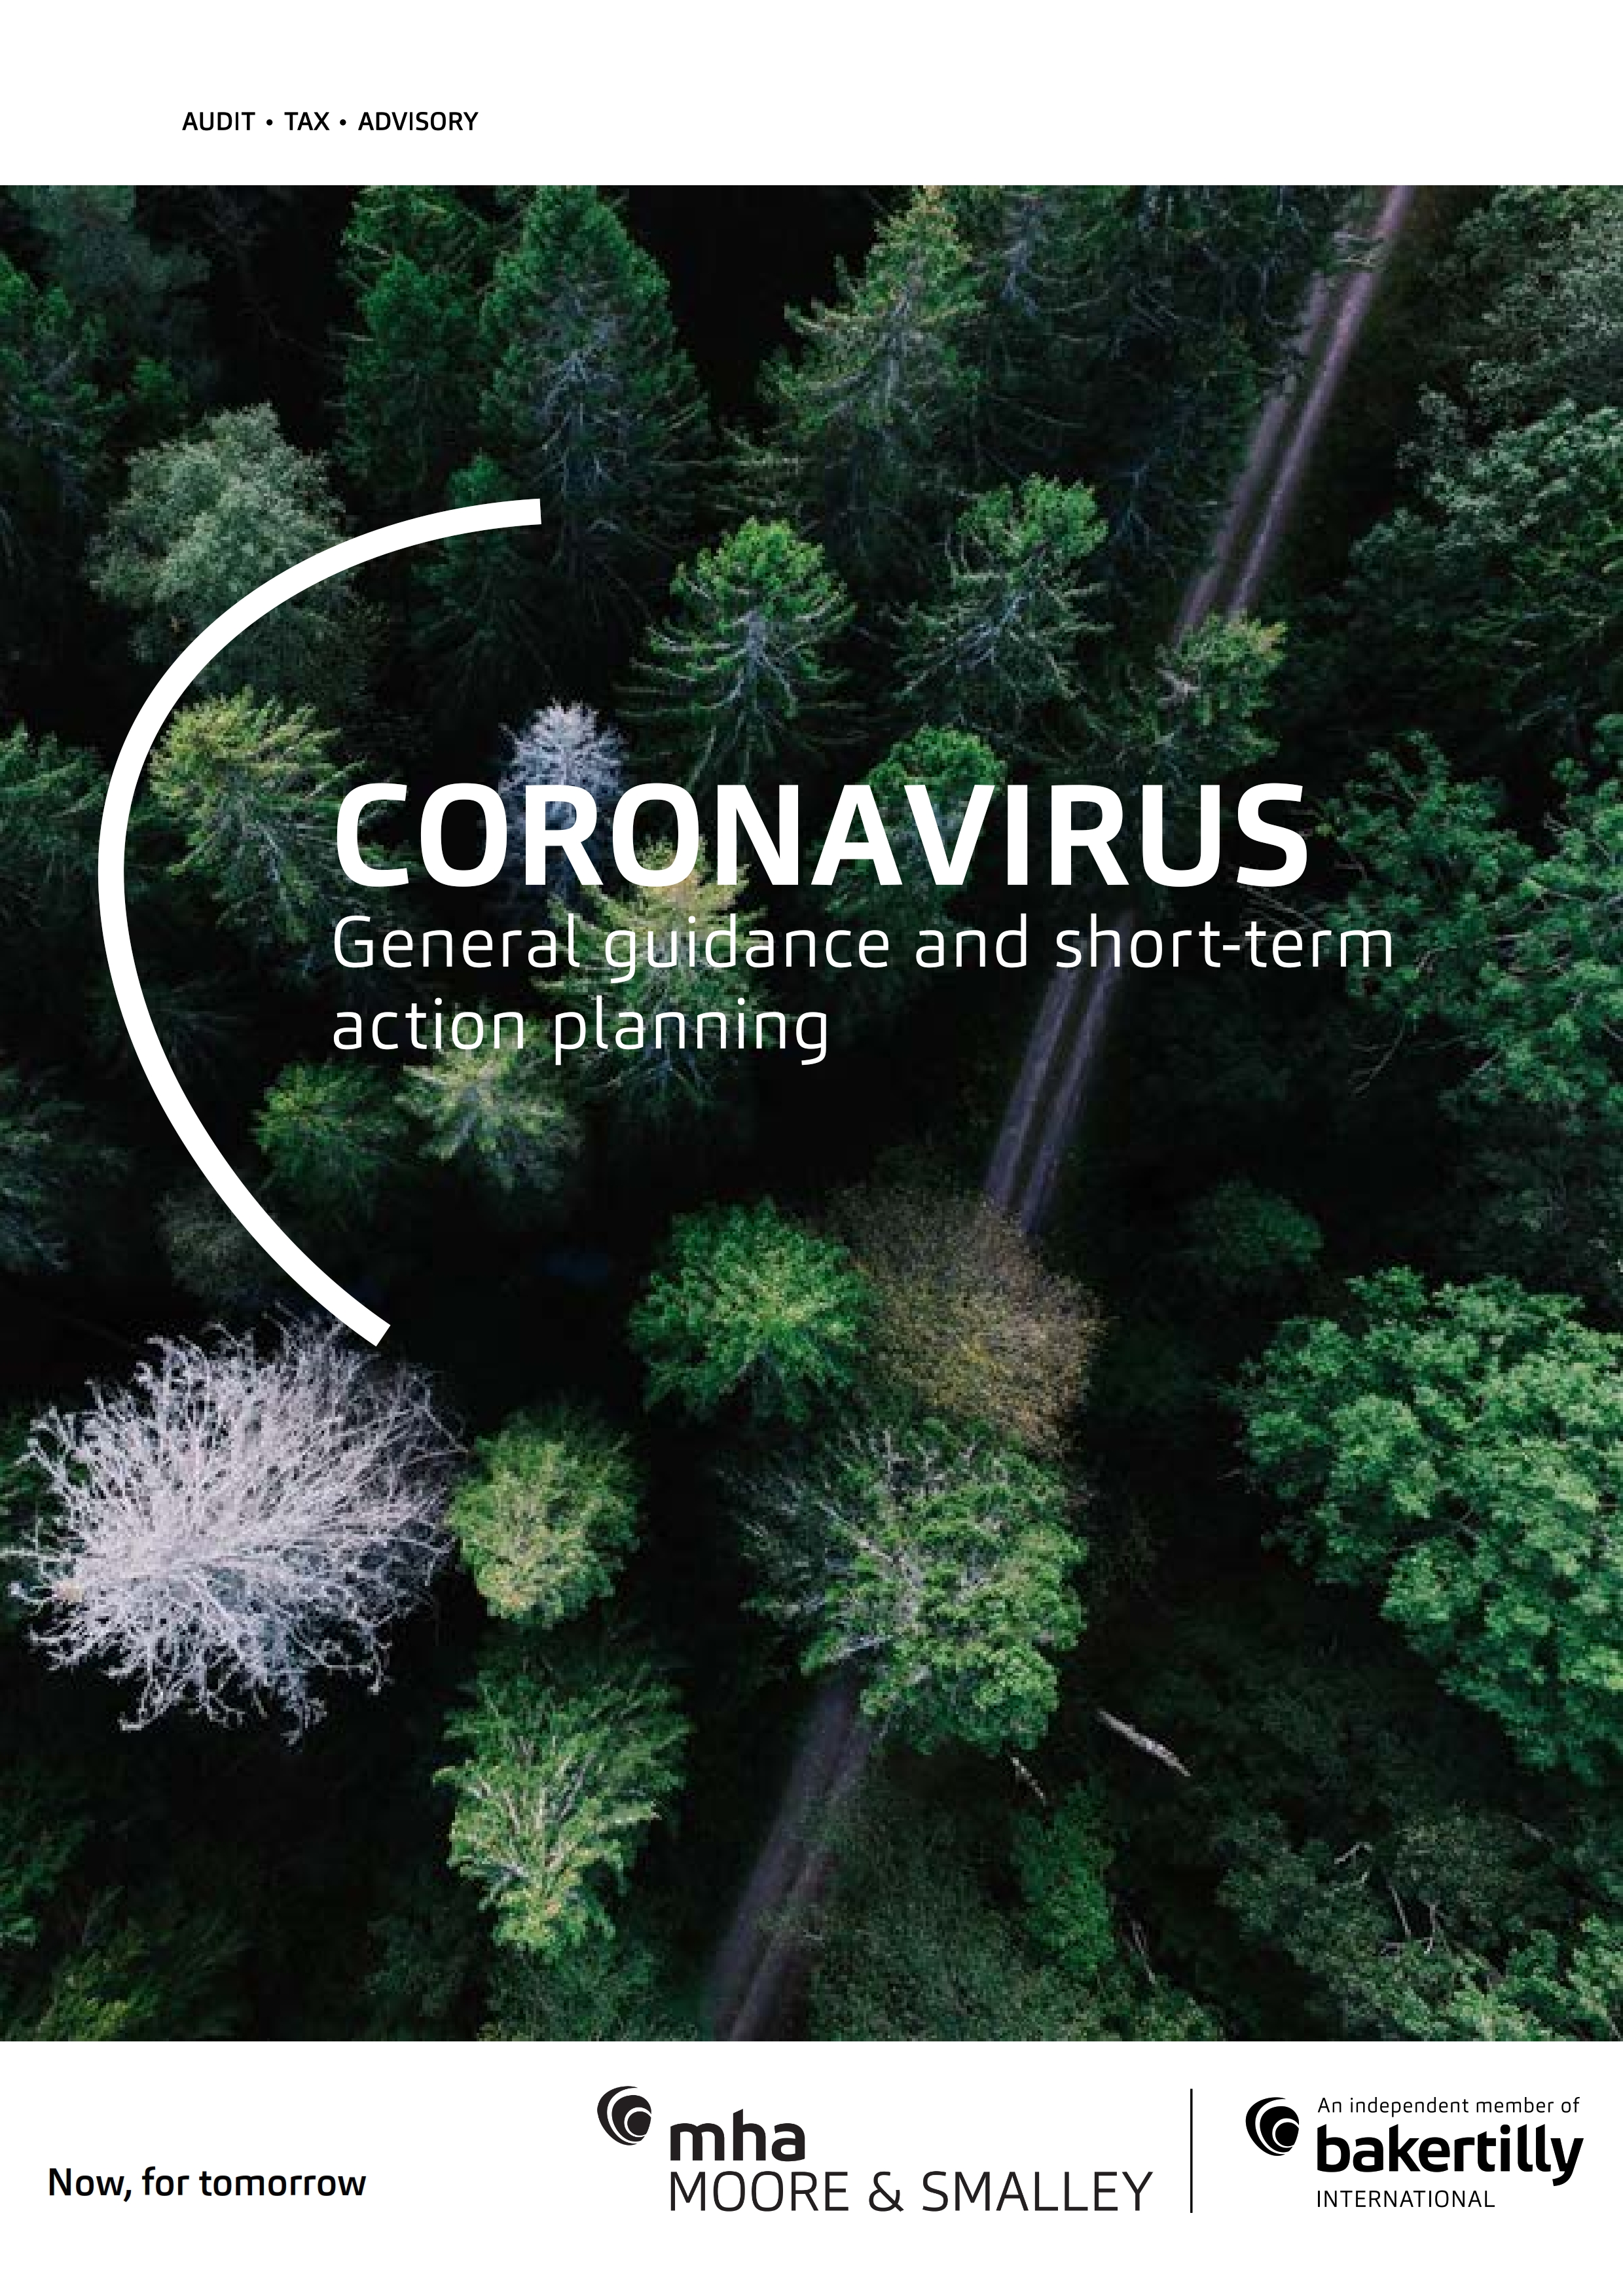 Coronavirus: General guidance and short-term action planning